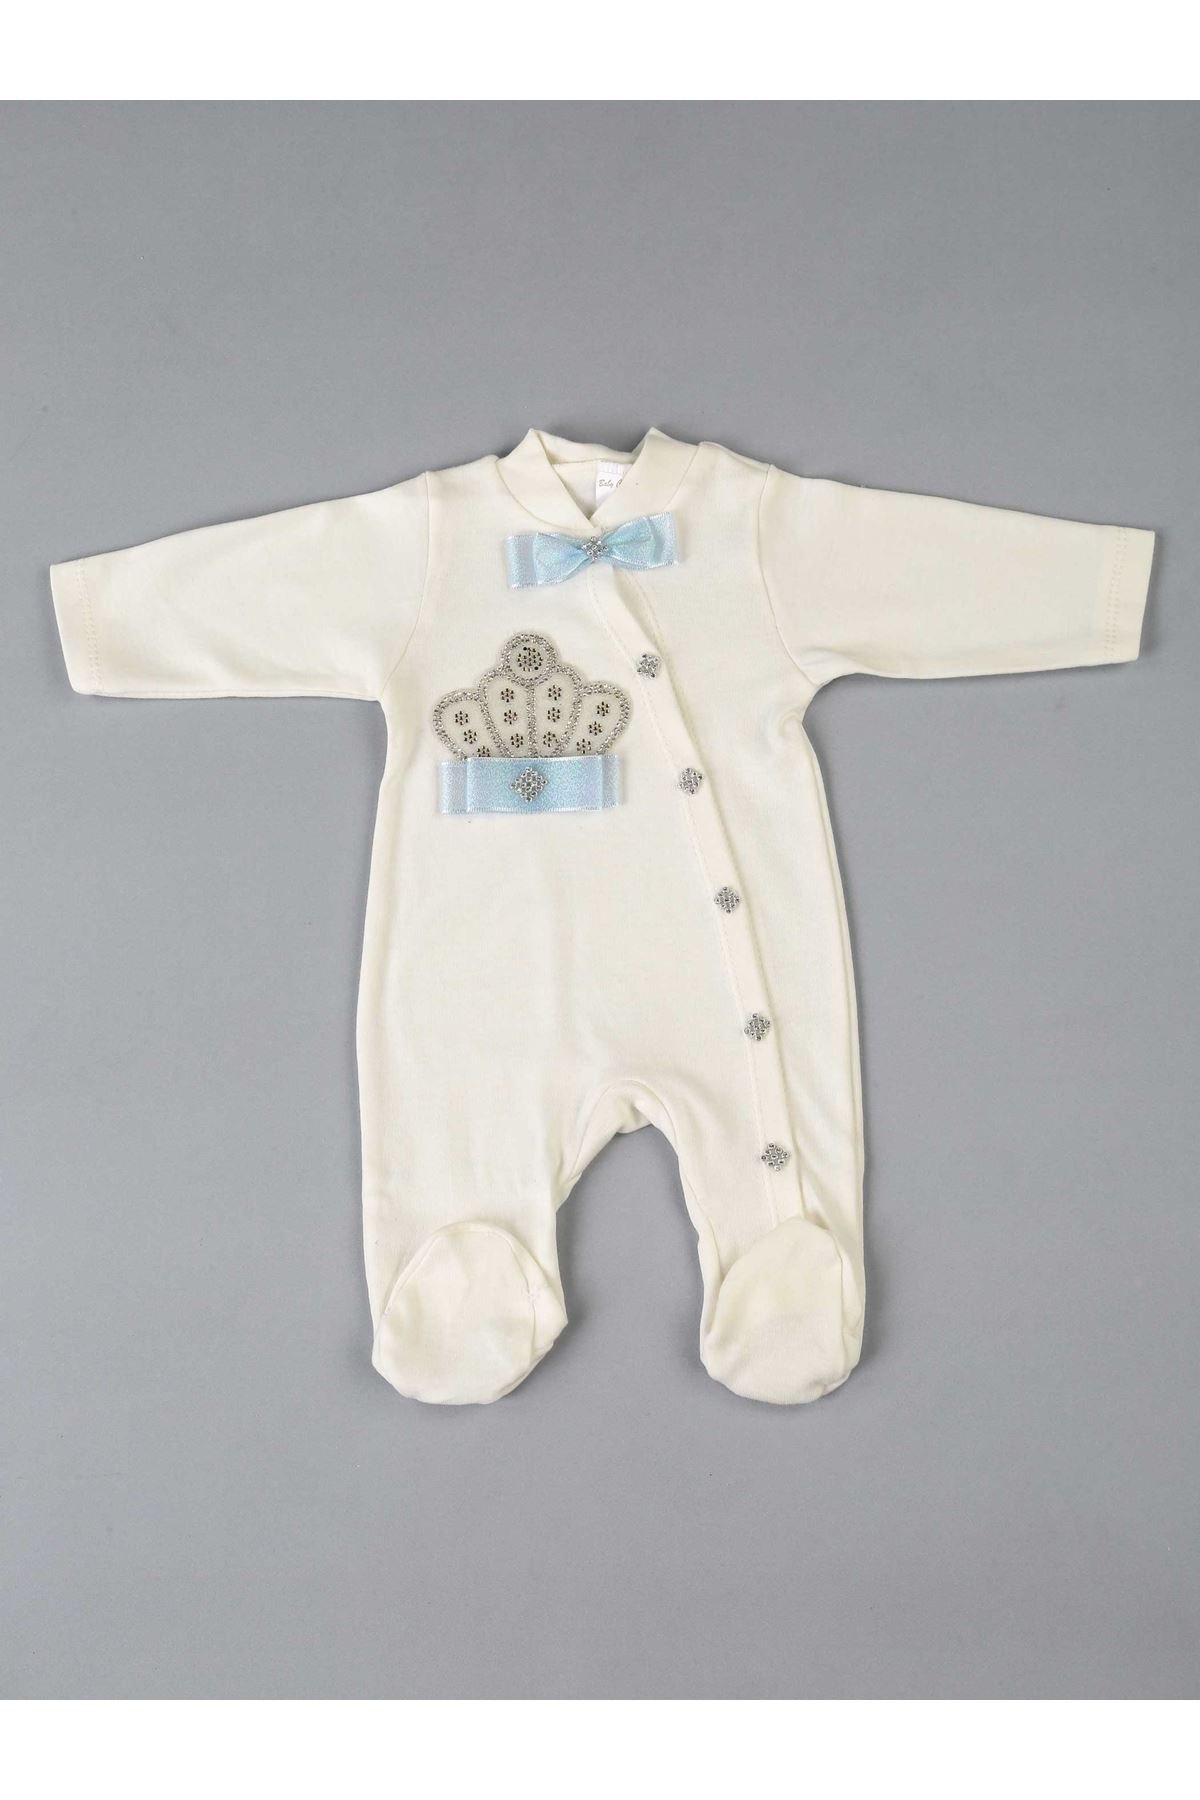 Blue King Crowned Male Baby 5 Piece Jumpsuit Set